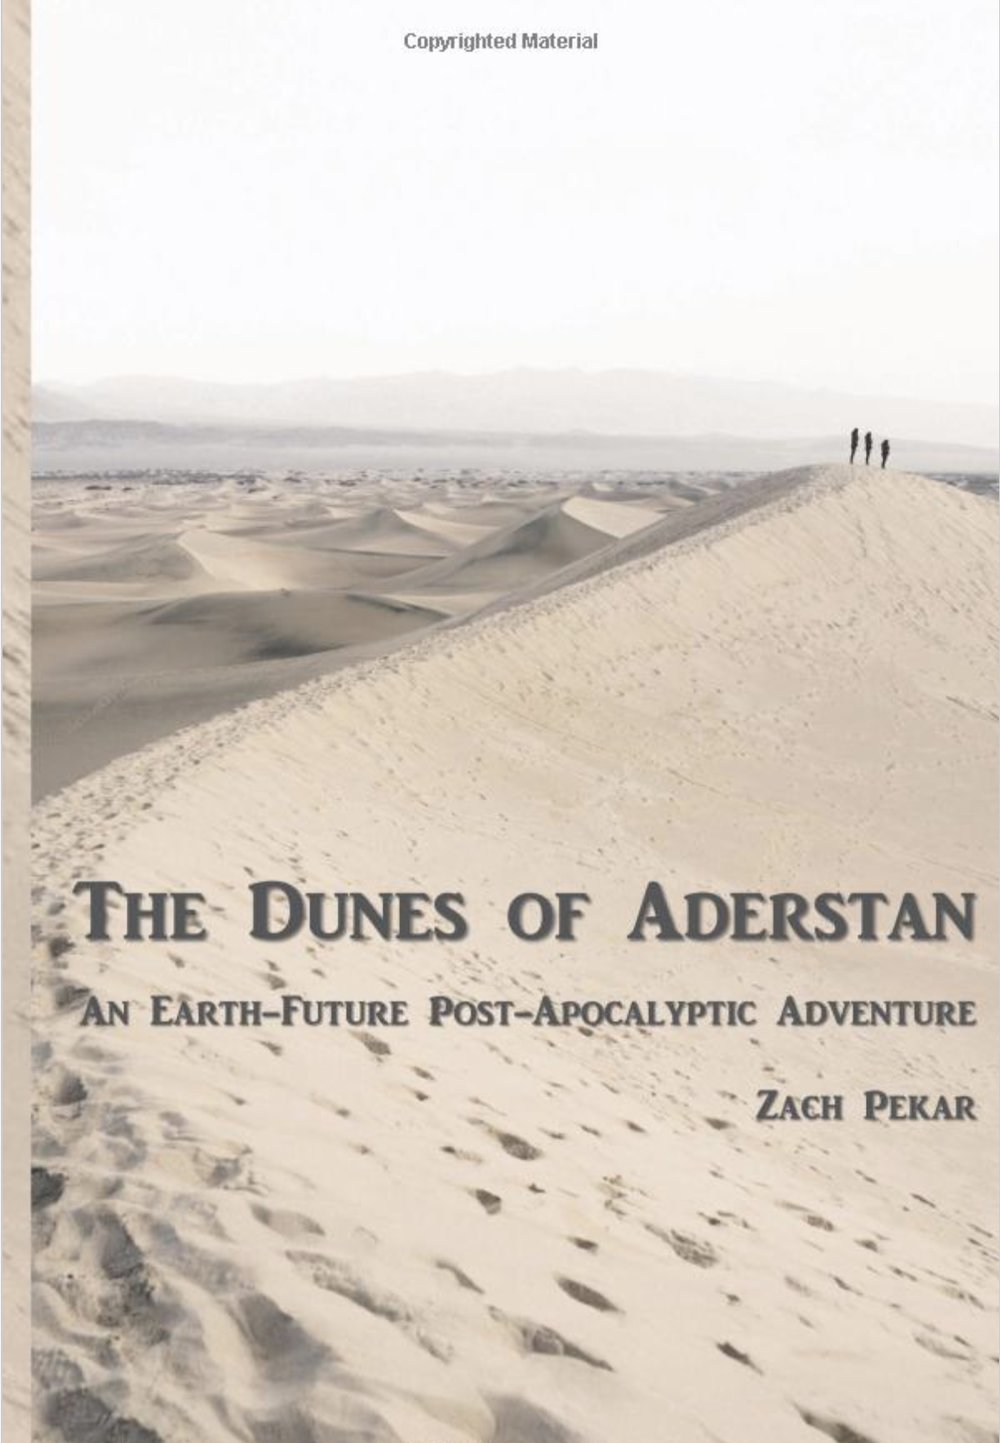 The Dunes of Aderstan: An Earth-Future Post-Apocalyptic Adventure